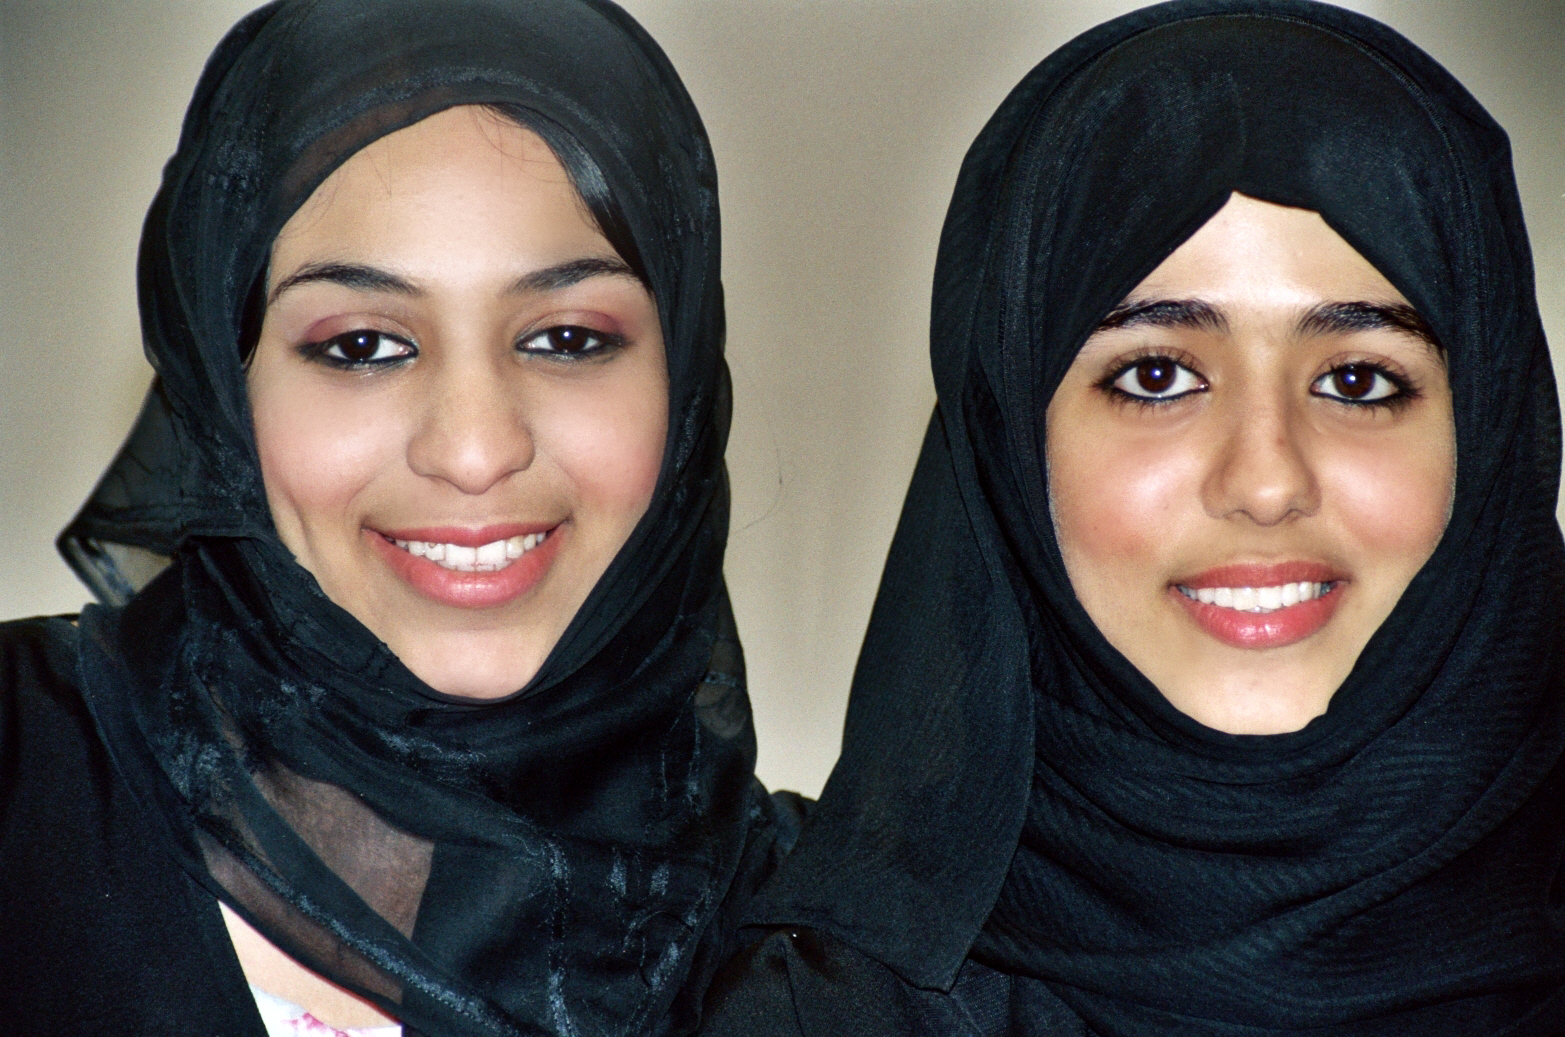 Indian Local Beautiful Girl Wallpaper The Emirati Stereotypes The Human Breed Blog